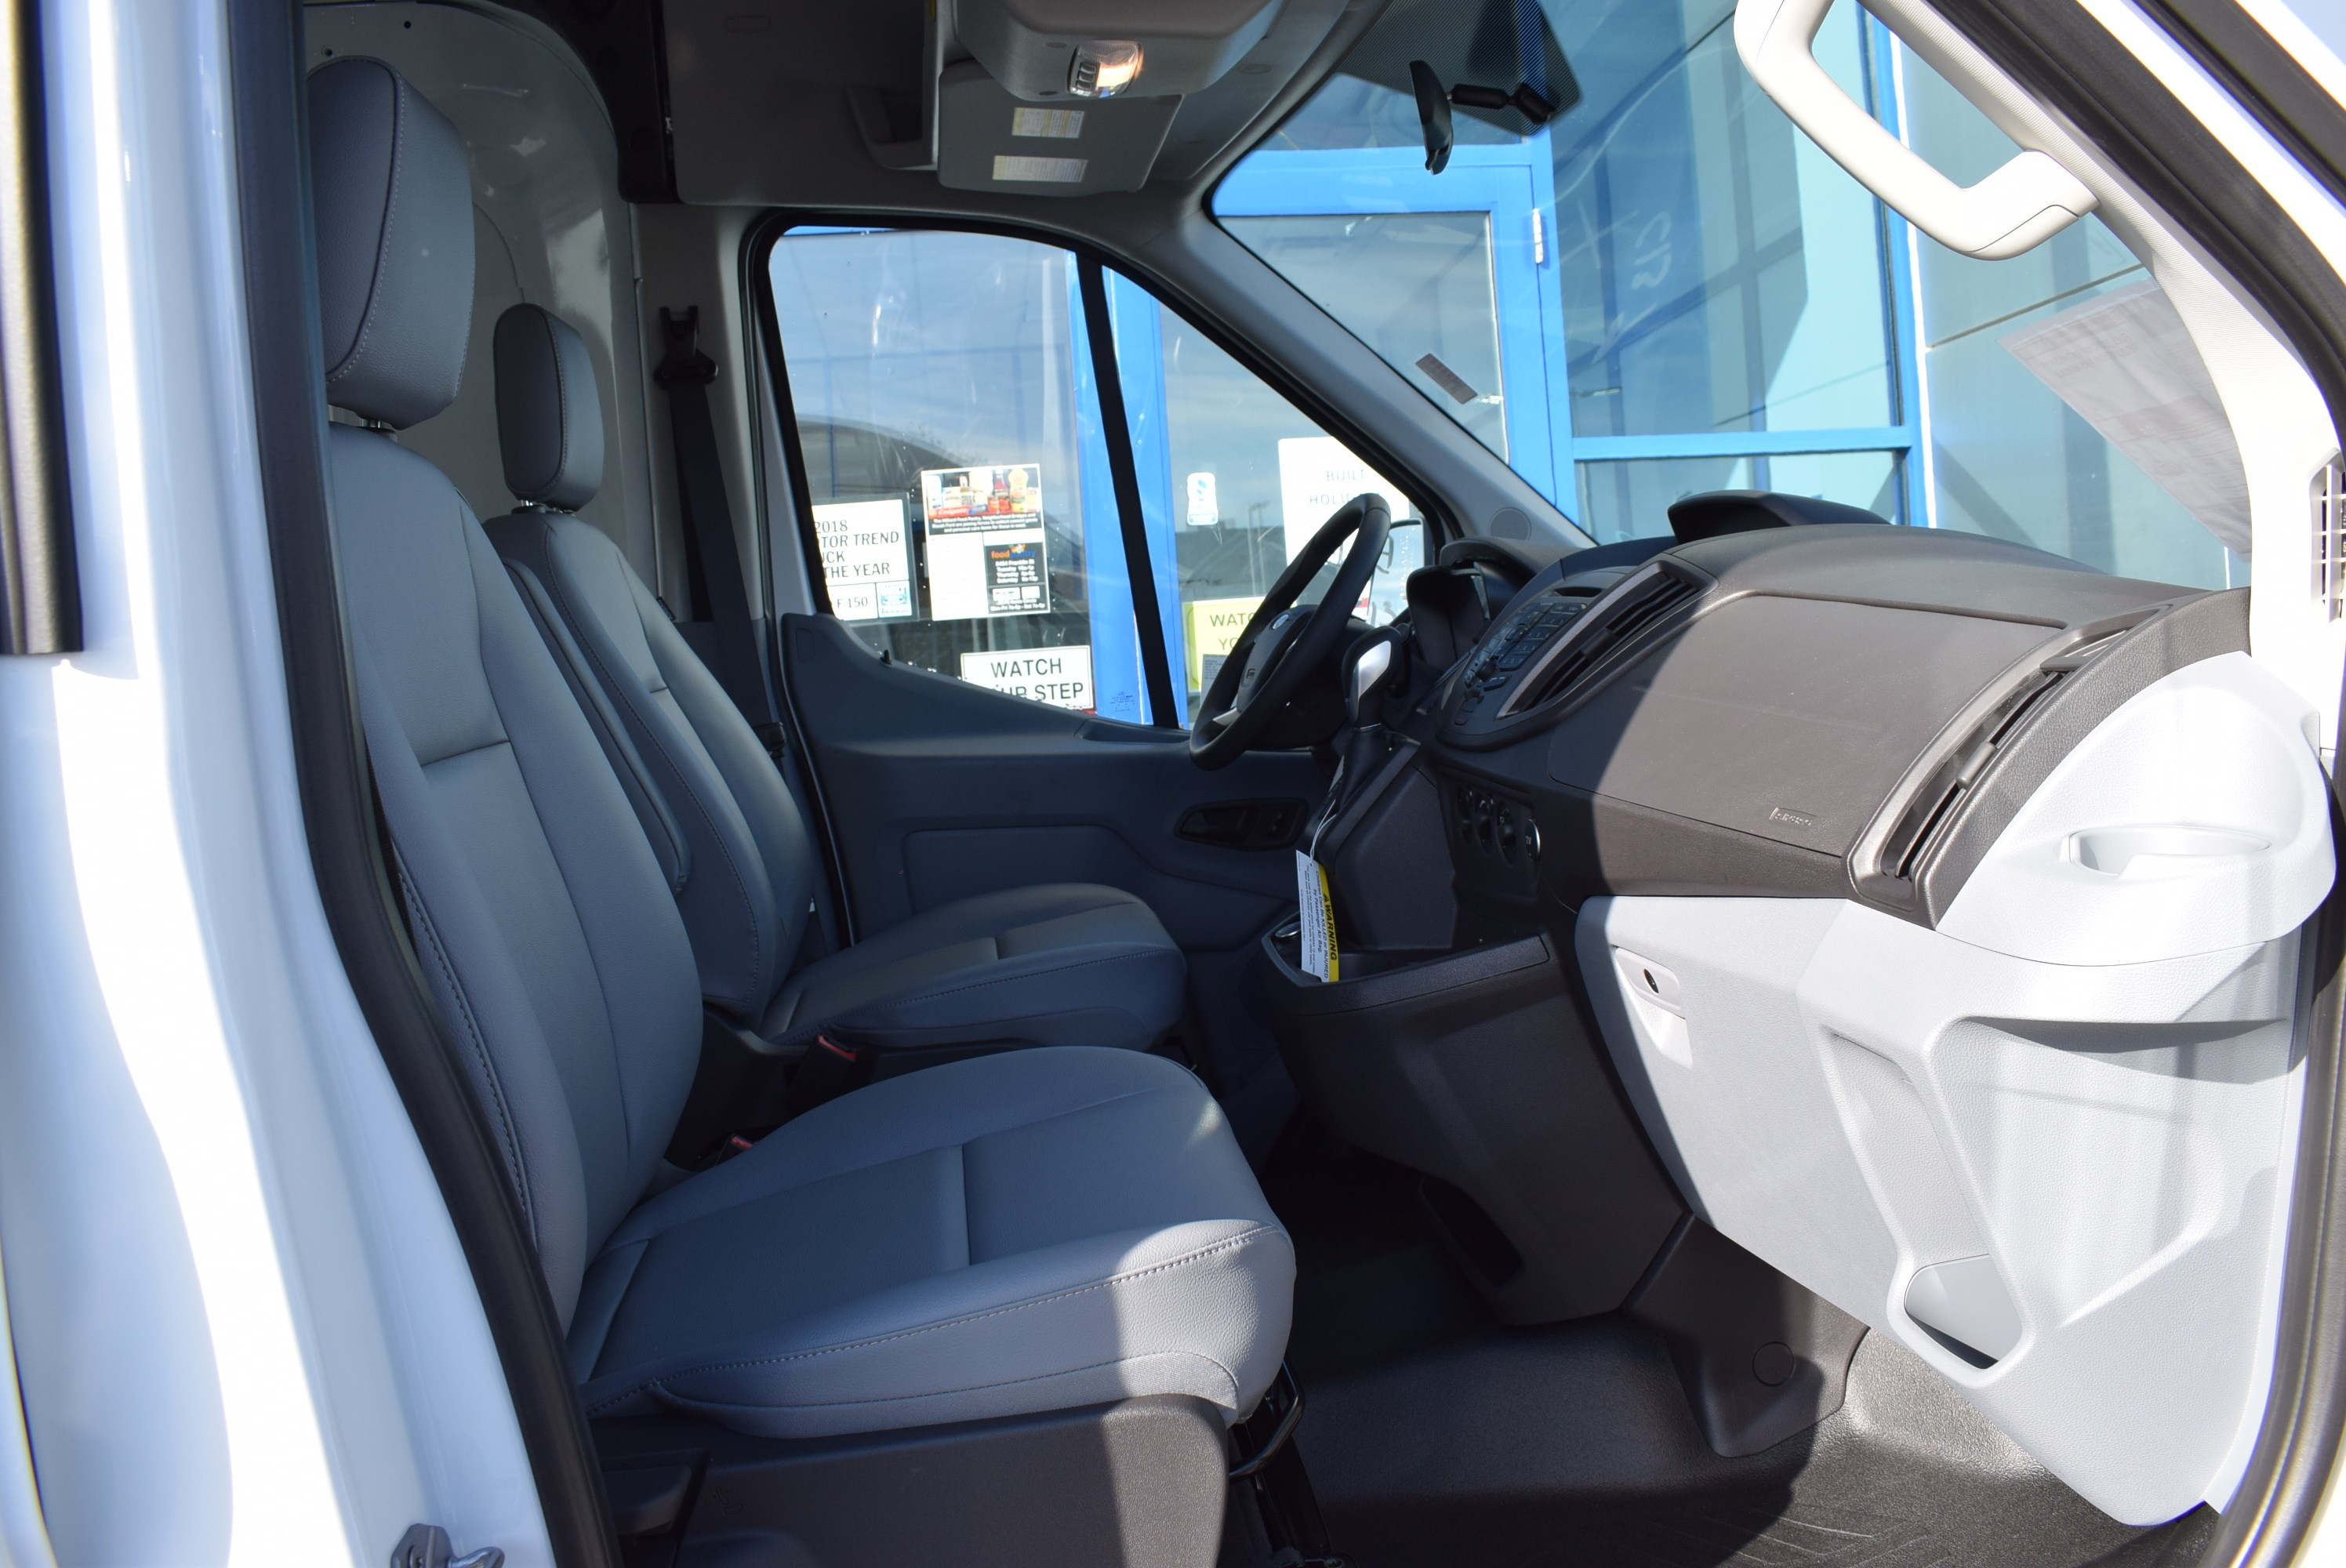 2019 Transit 150 Med Roof 4x2,  Empty Cargo Van #T19085 - photo 18